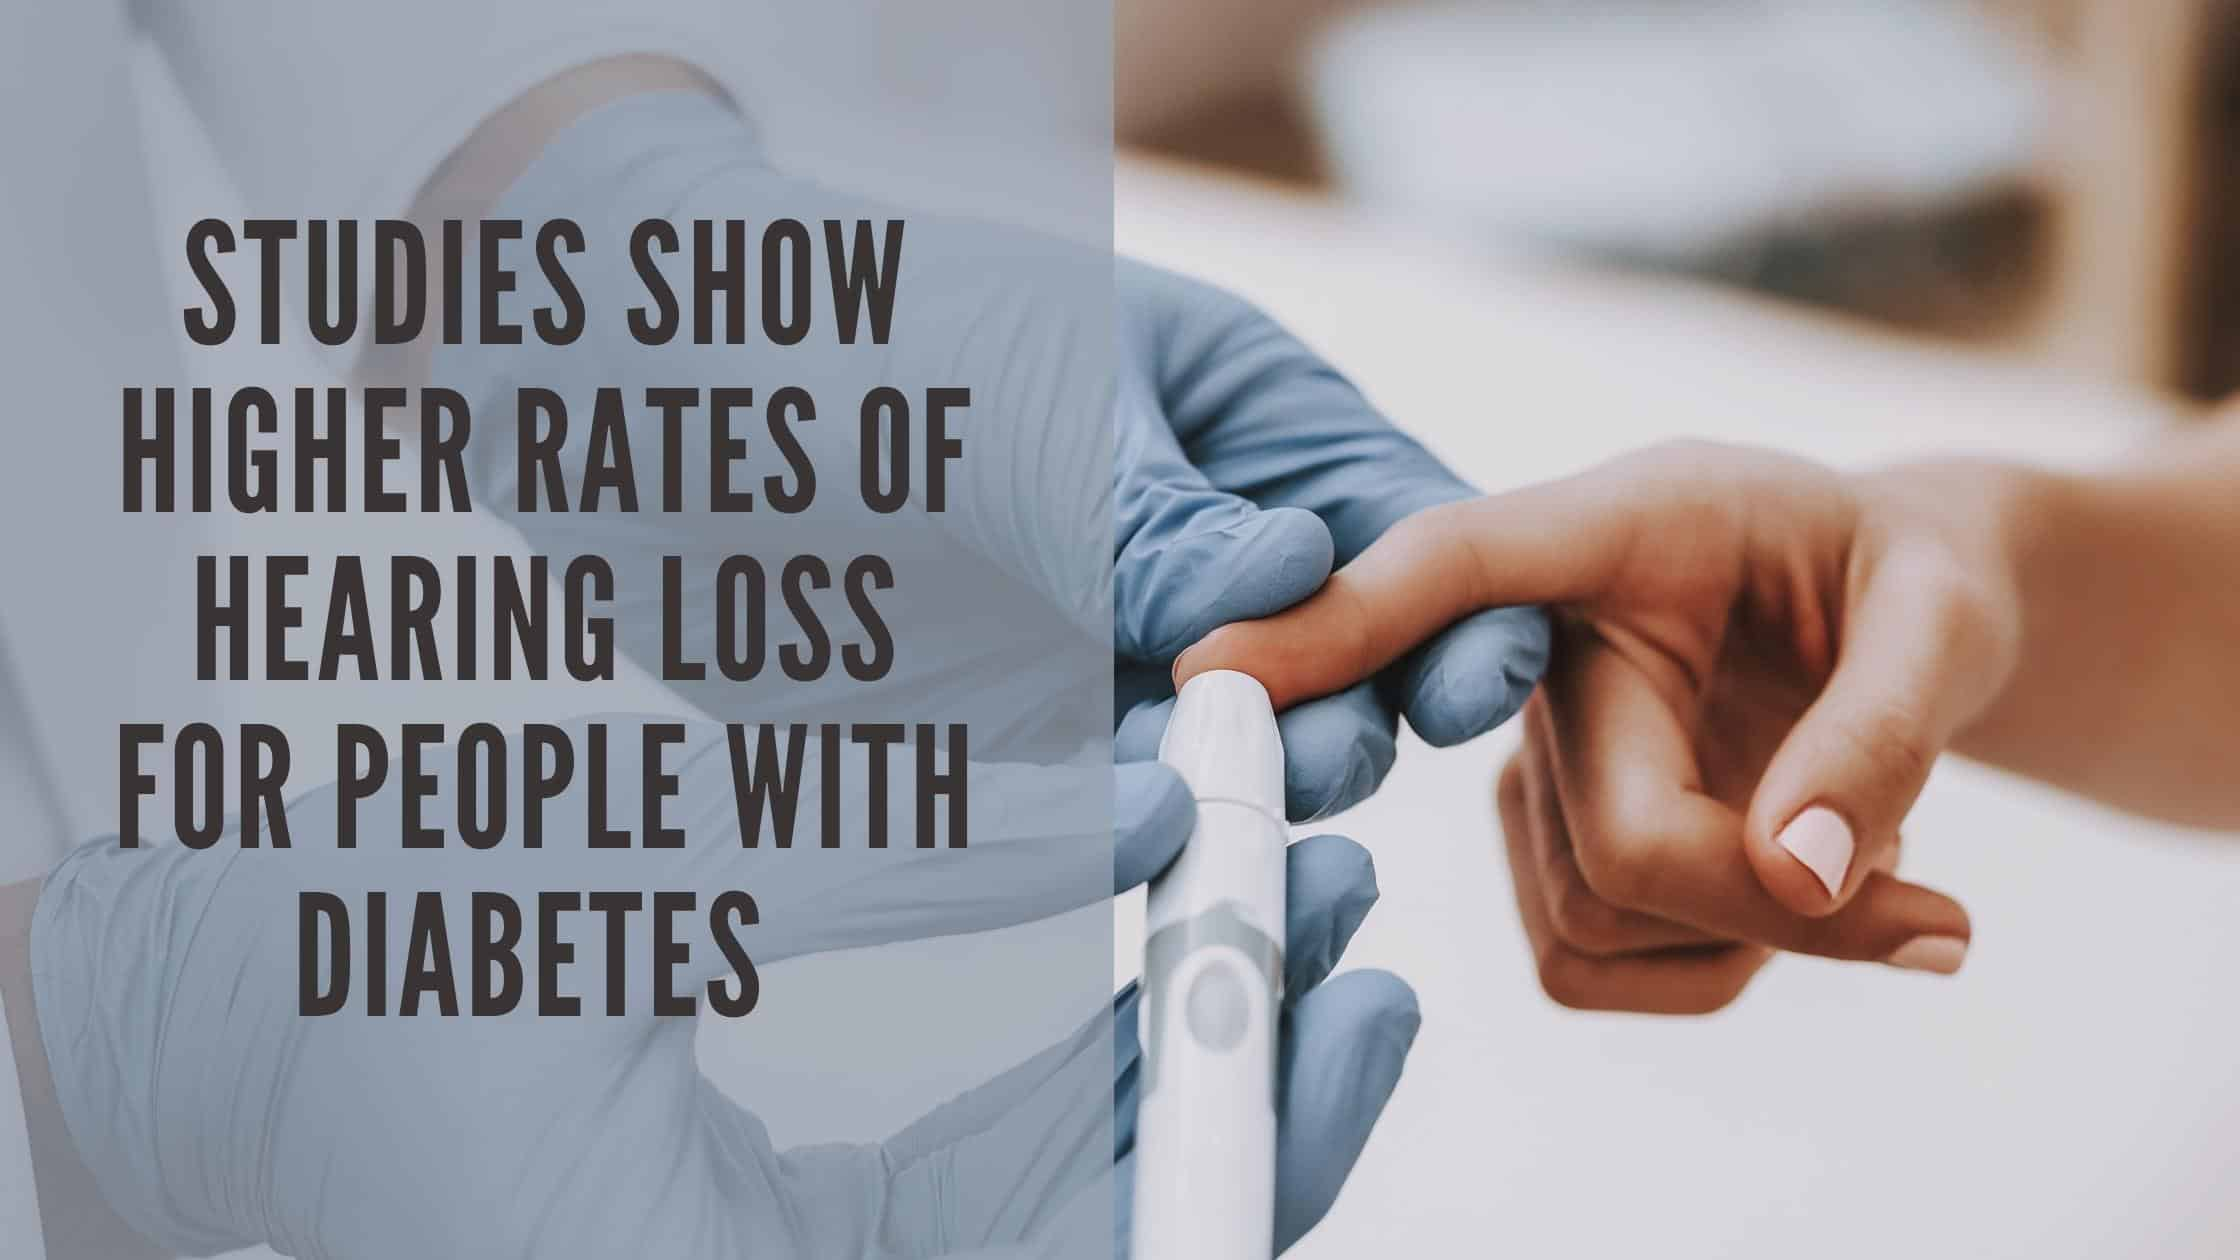 Studies Show Higher Rates of Hearing Loss for People with Diabetes(1)